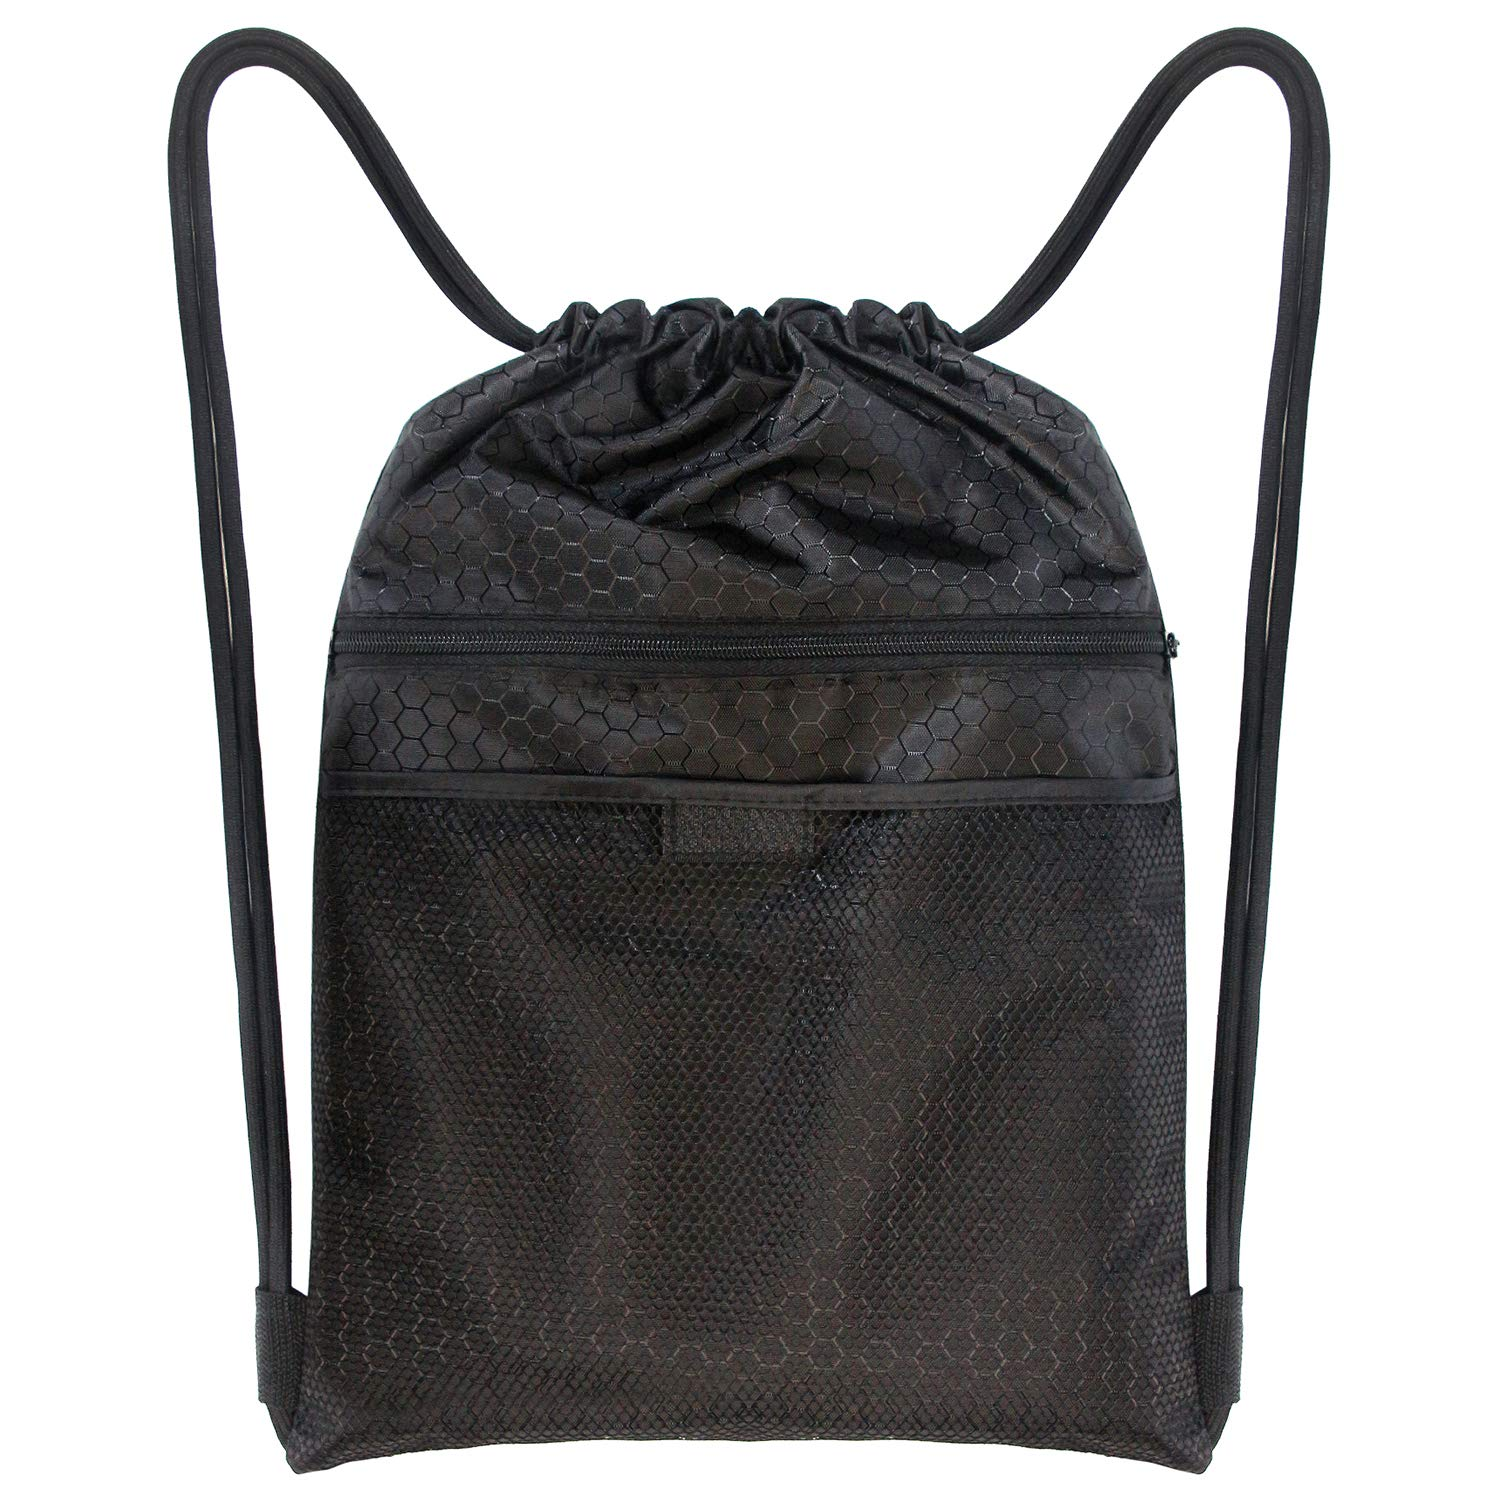 Drawstring Backpack Strings Bags with Zipper and Mesh Pockets Sports Athletic School Travel Gym Lightweight Sackpack for Boys Girls Children Men Women